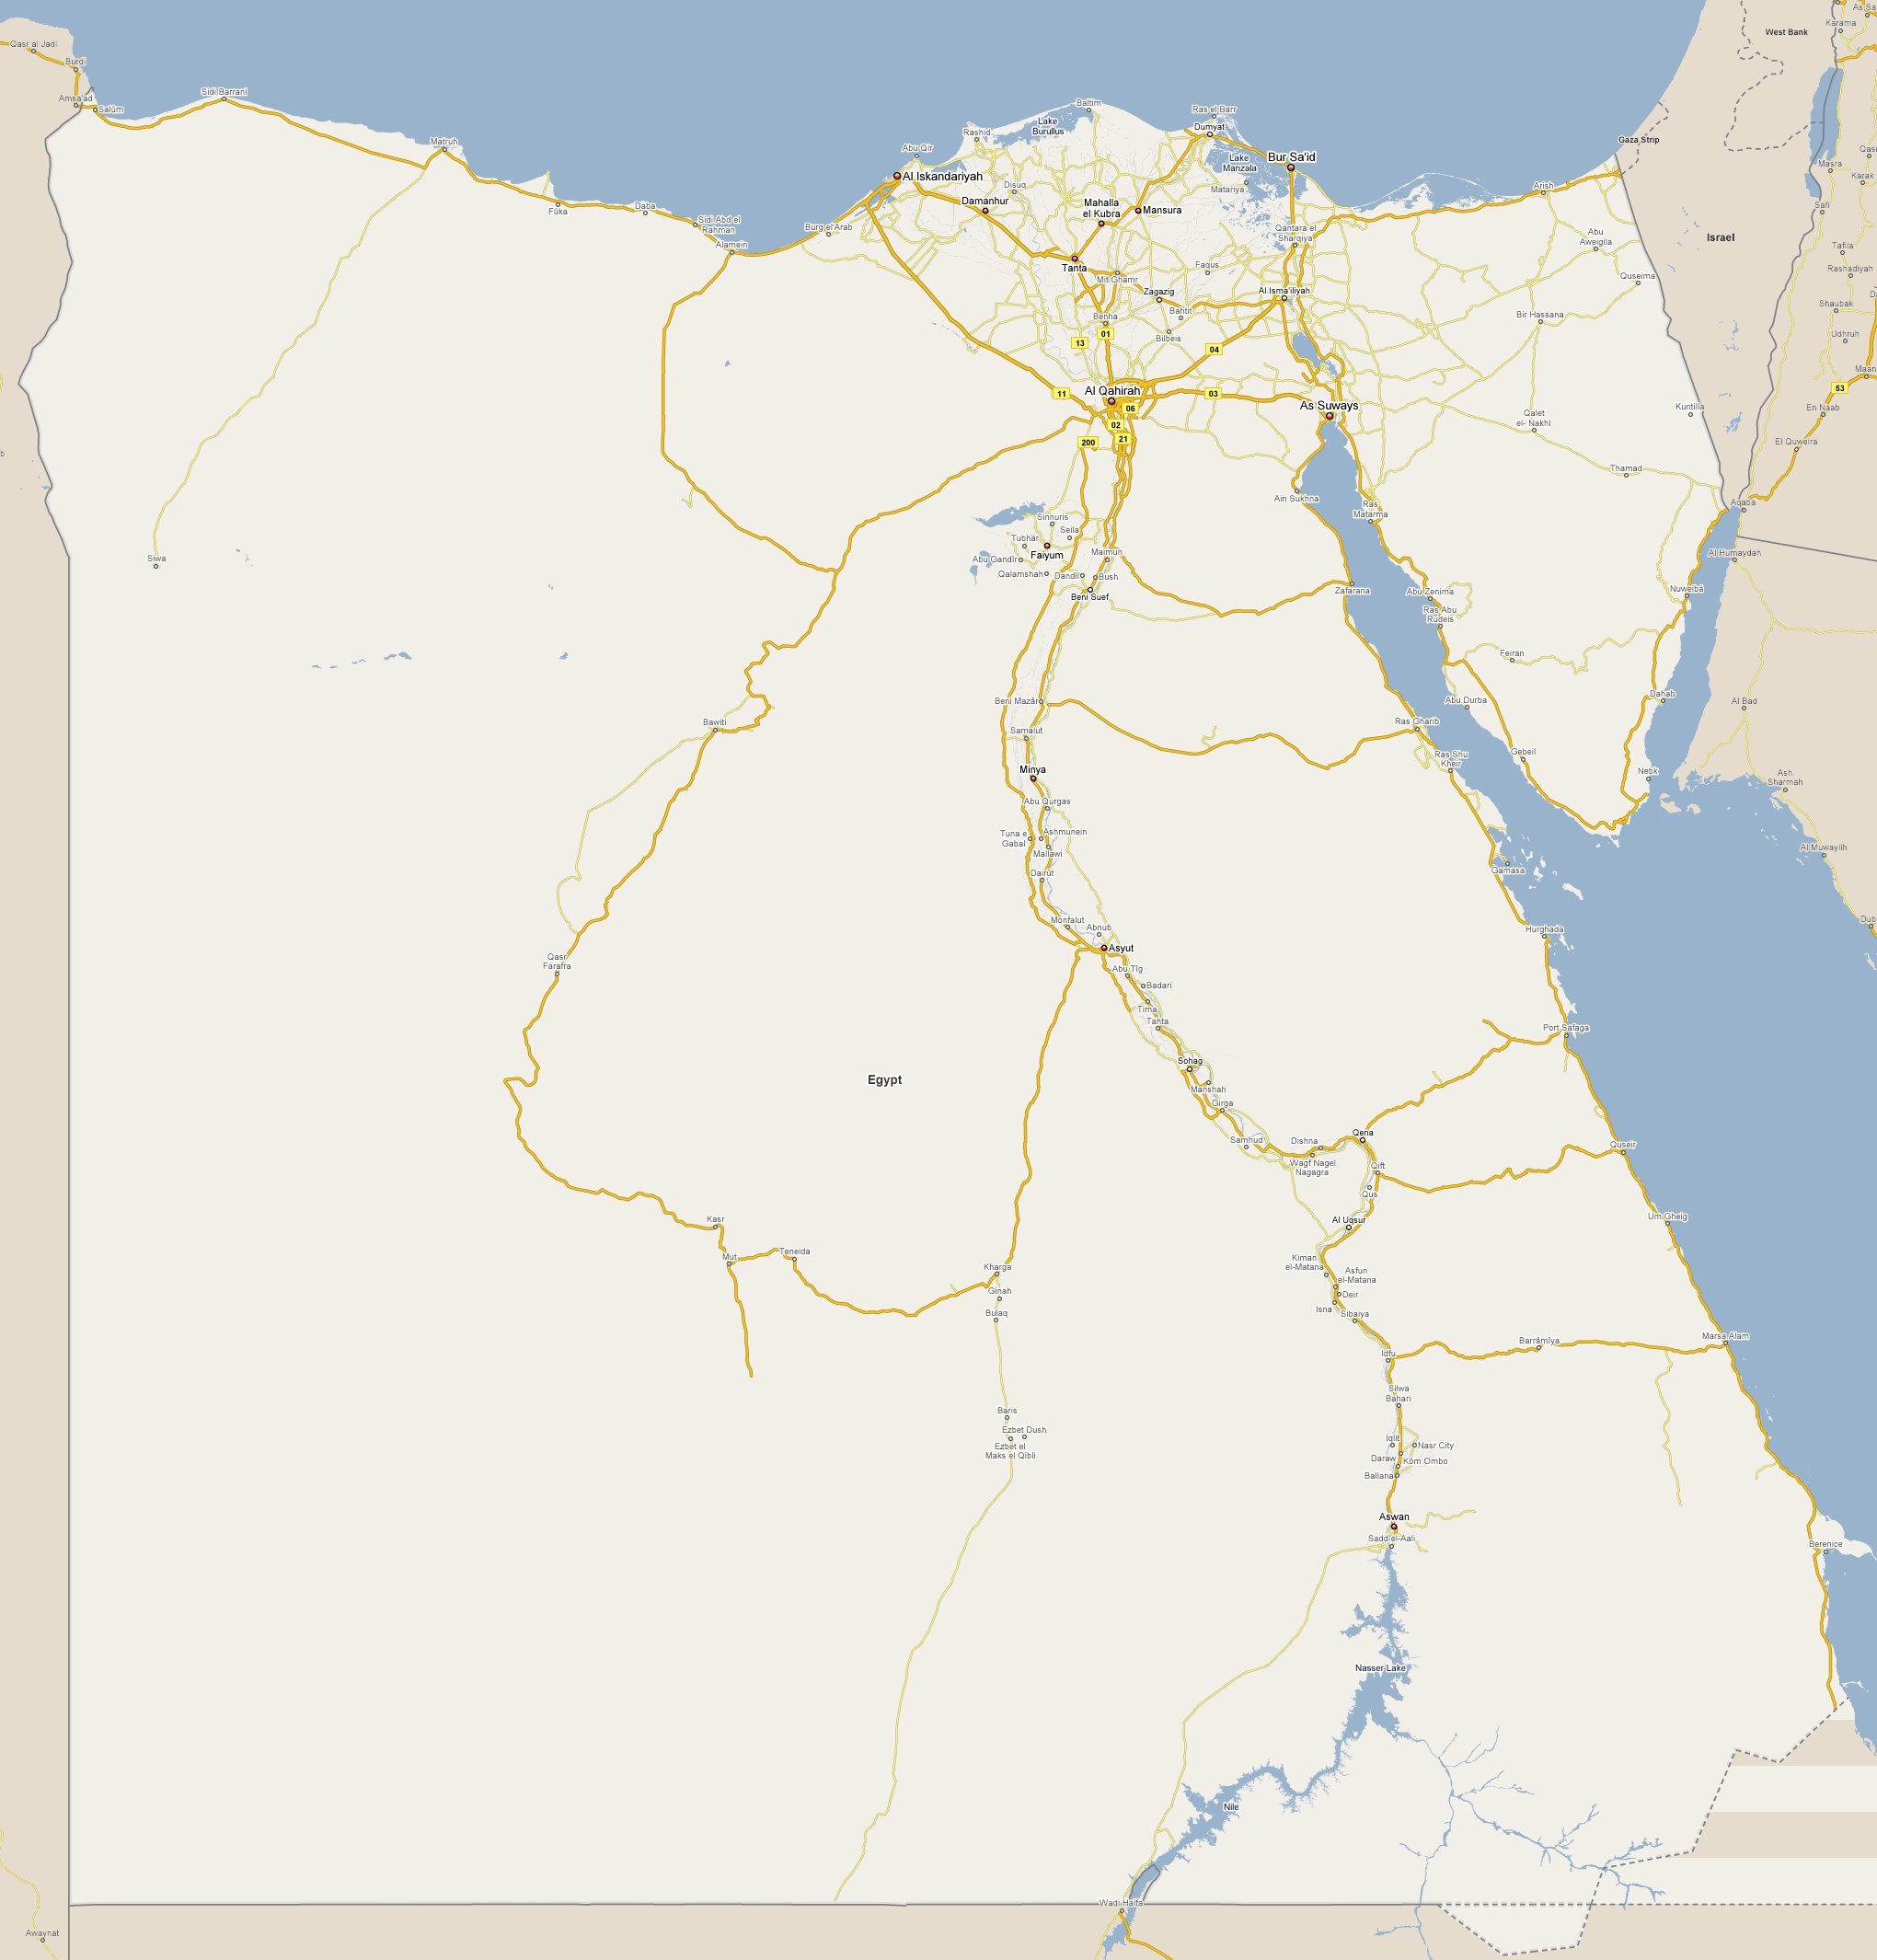 Footiemapcom Egypt Map Of Top Tier Egyptian - Map of egypt country